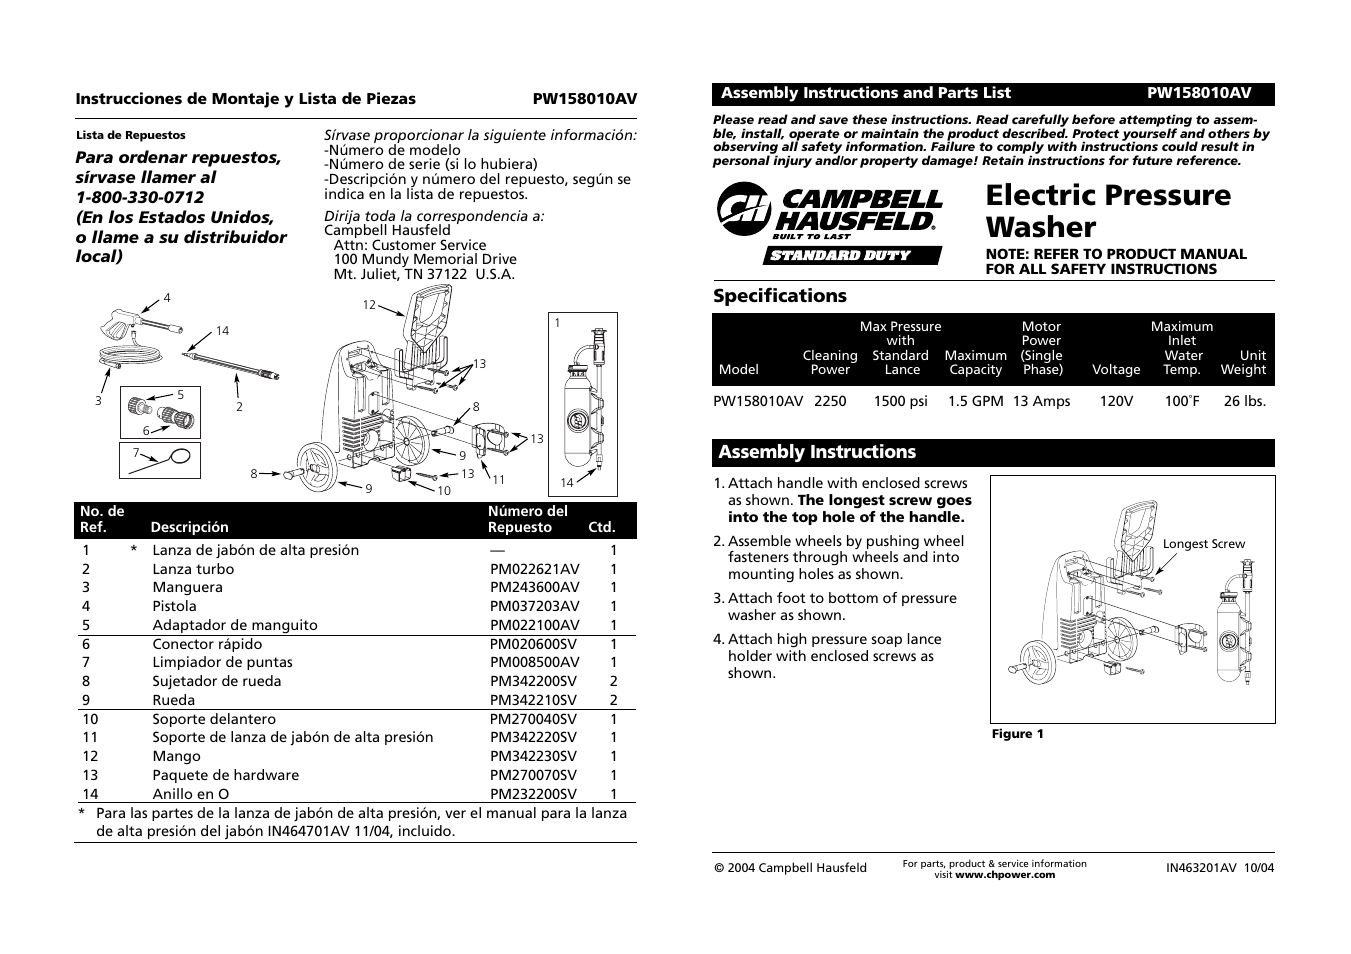 campbell hausfeld pw158010av user manual 6 pages original mode rh manualsdir com For Campbell Hausfeld Air Compressor Model Mt500101 Manual Campbell Hausfeld Pressure Washer Manual